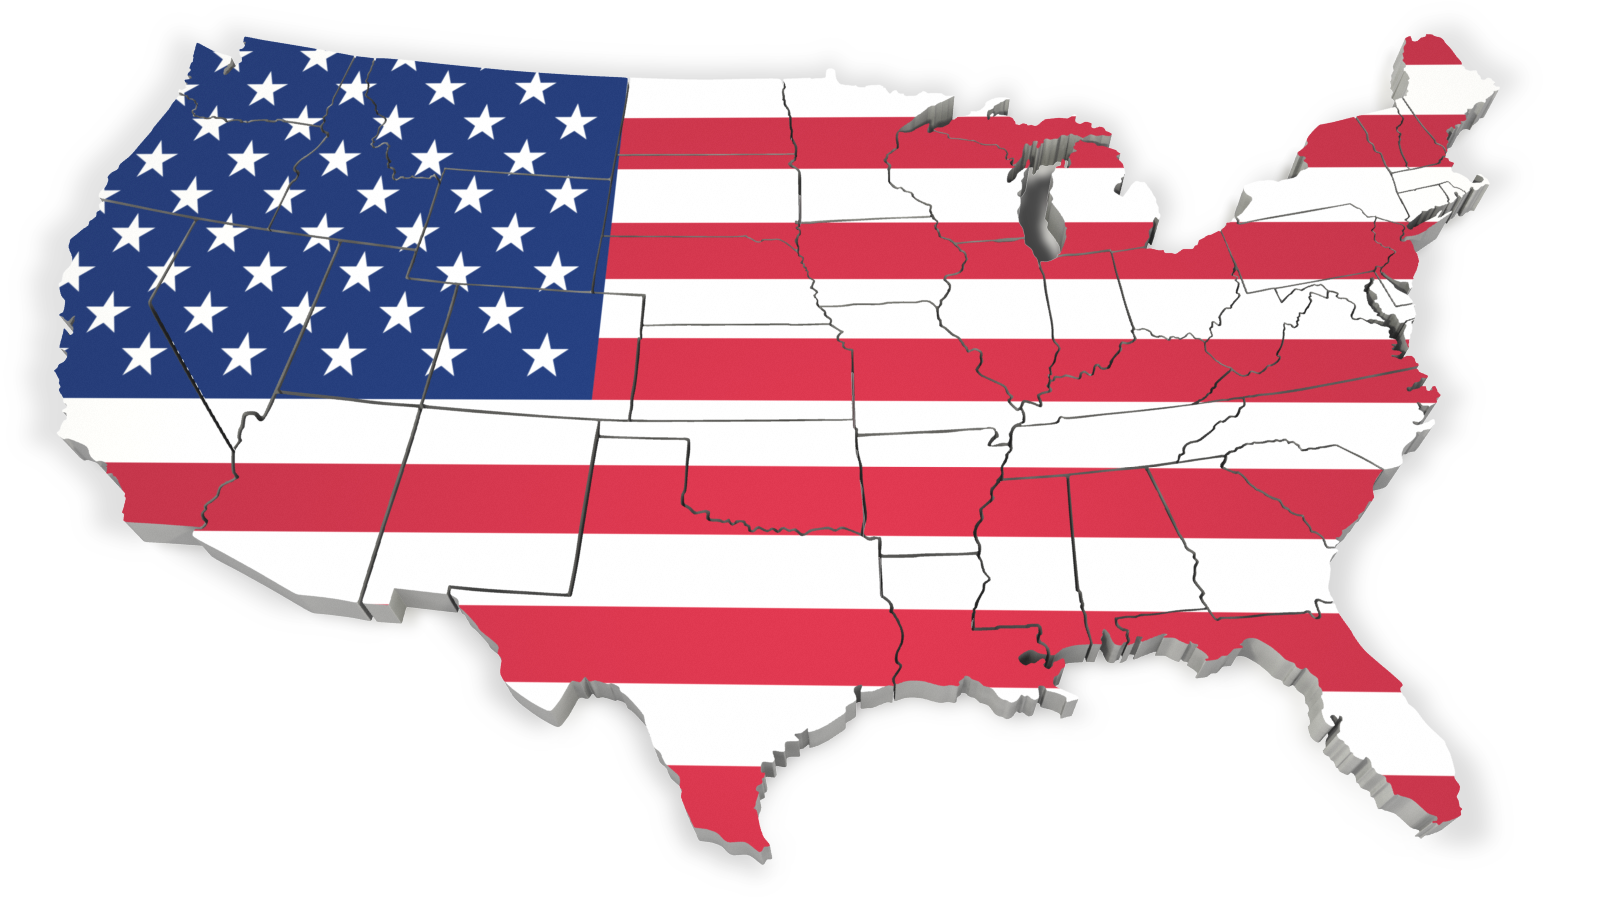 Clipart gun american flag. Image united states map